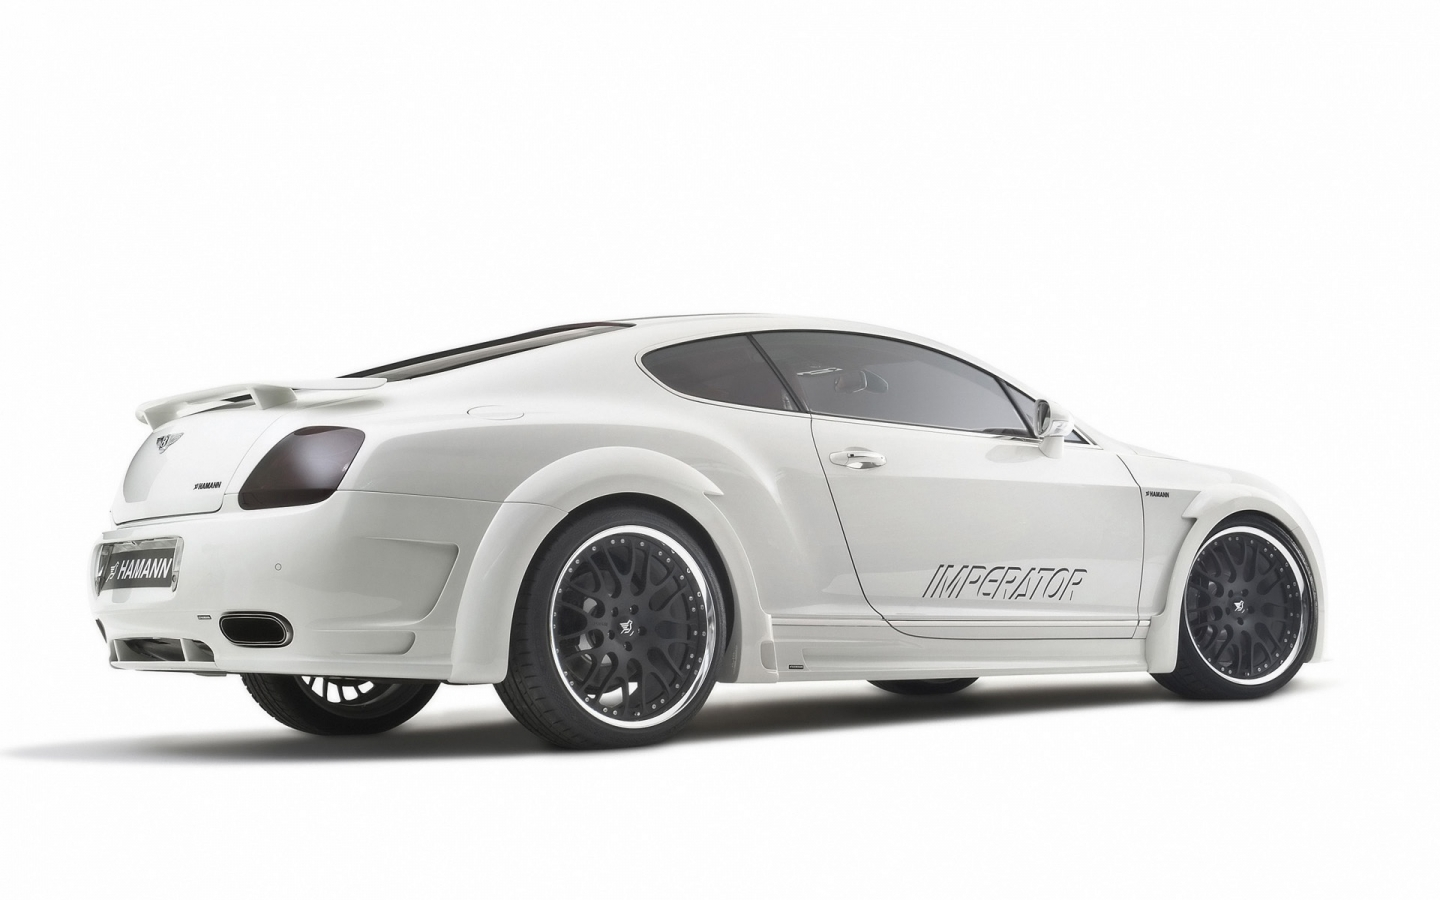 Bentley Continental GT Hamann Imperator Rear for 1440 x 900 widescreen resolution